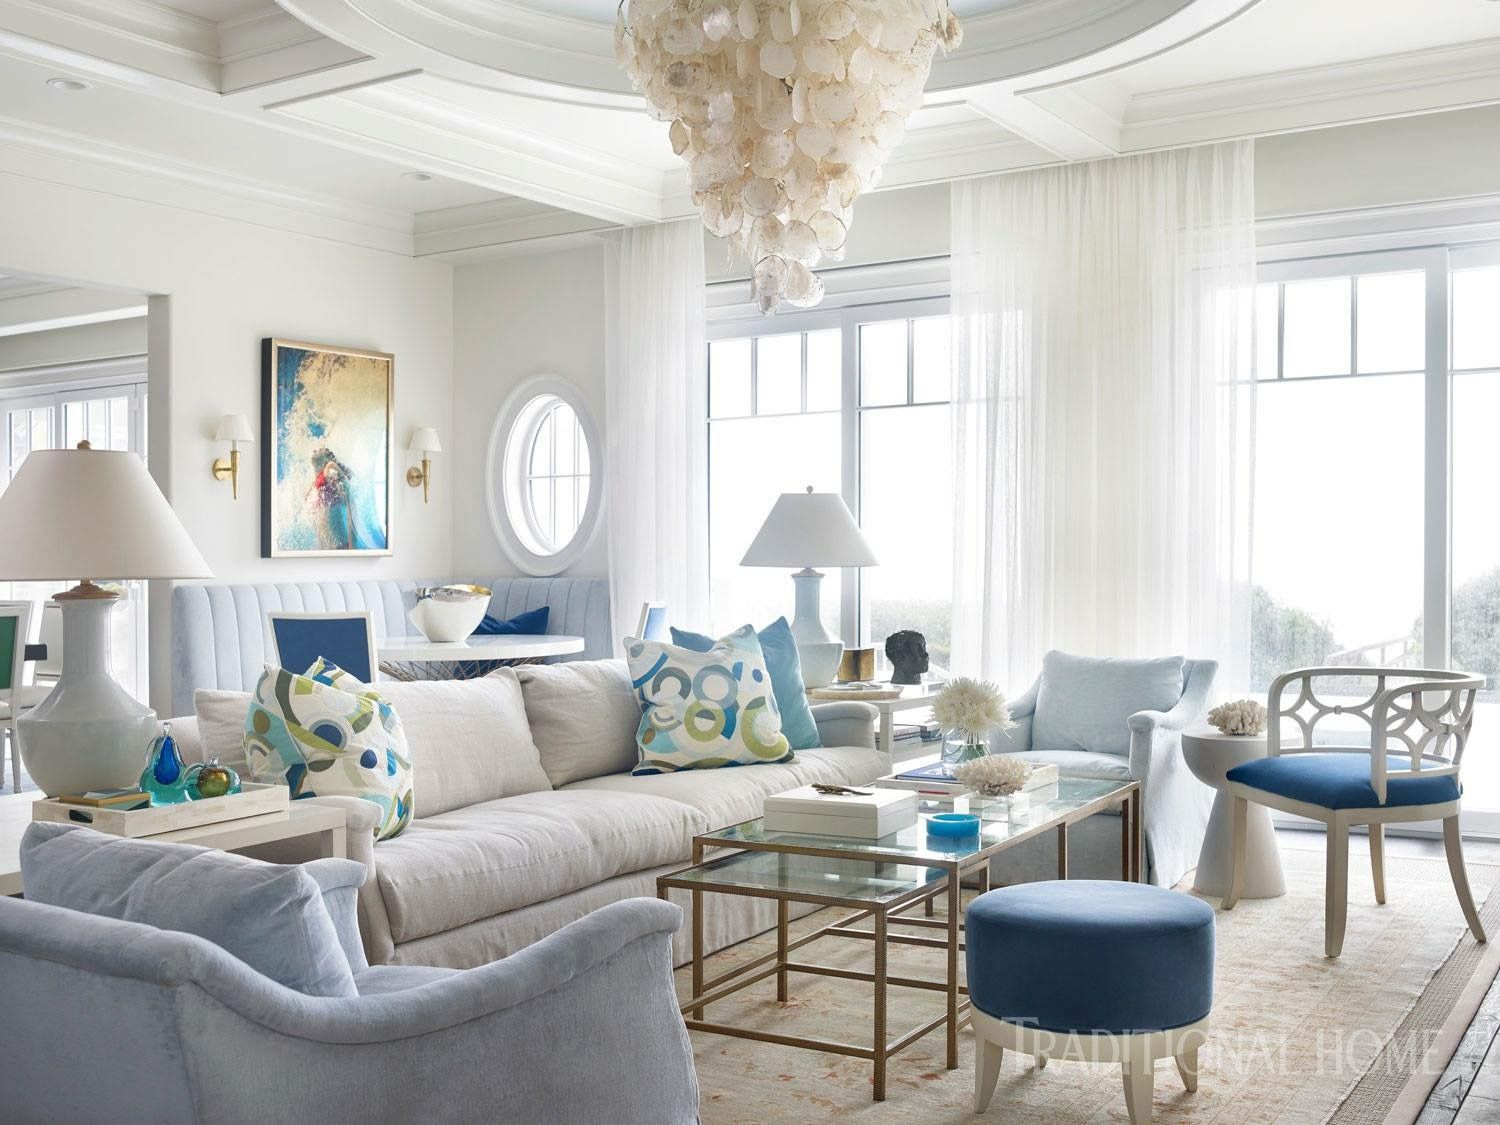 Pin by Cheryl Lenenski on Living Room Ideas | Pinterest | Room ideas ...